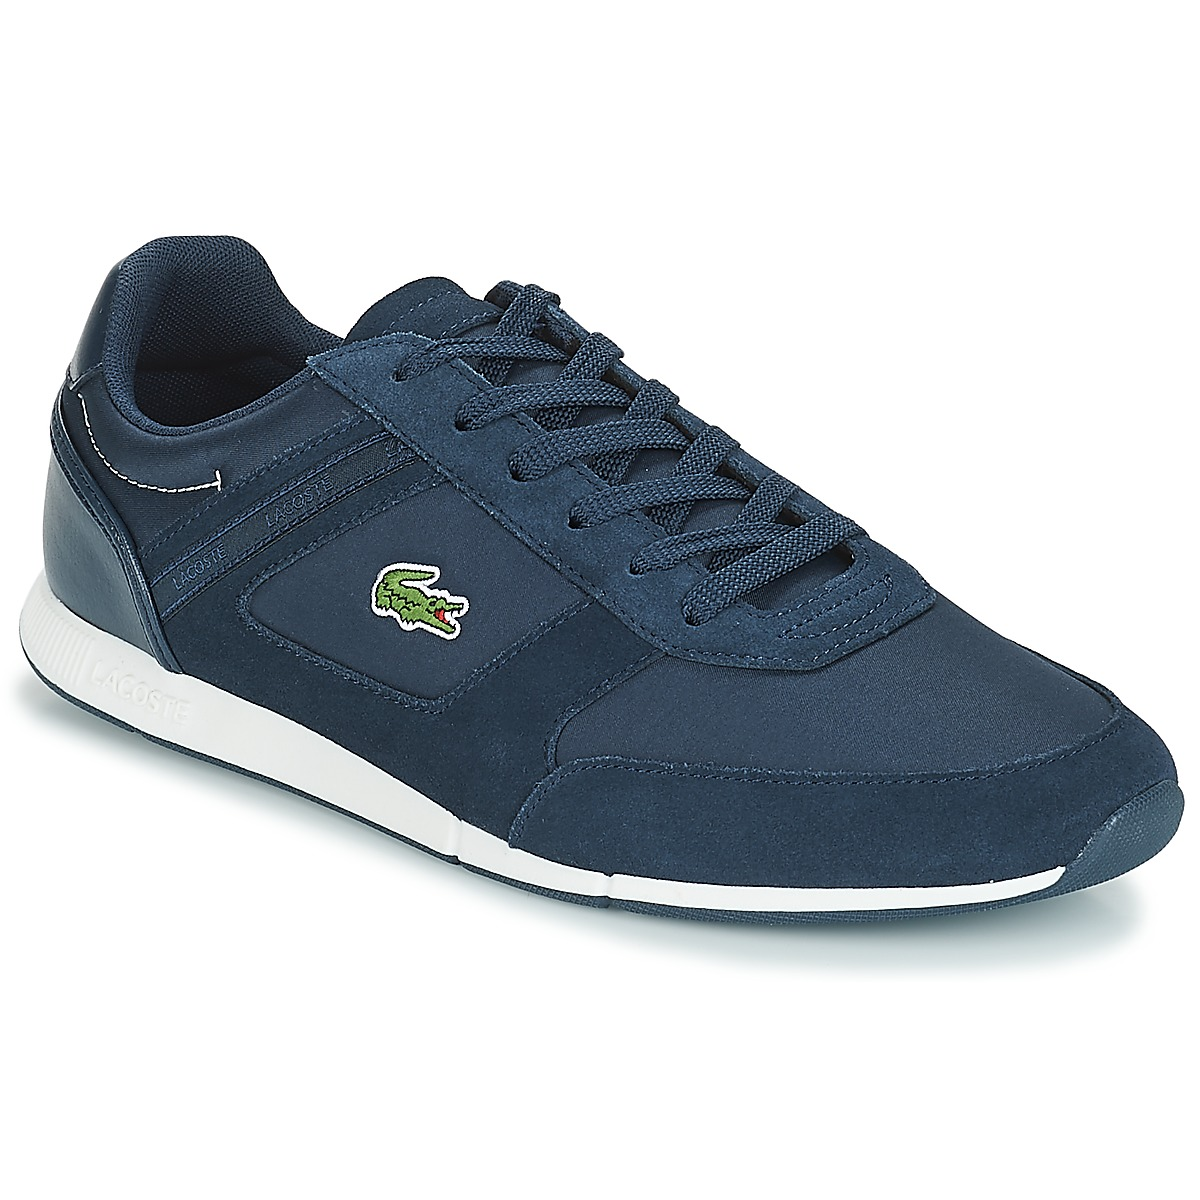 Homme LACOSTE caanaby EVO Cuir Baskets Taille UK 7-11.5 RRP £ 85 Grade B